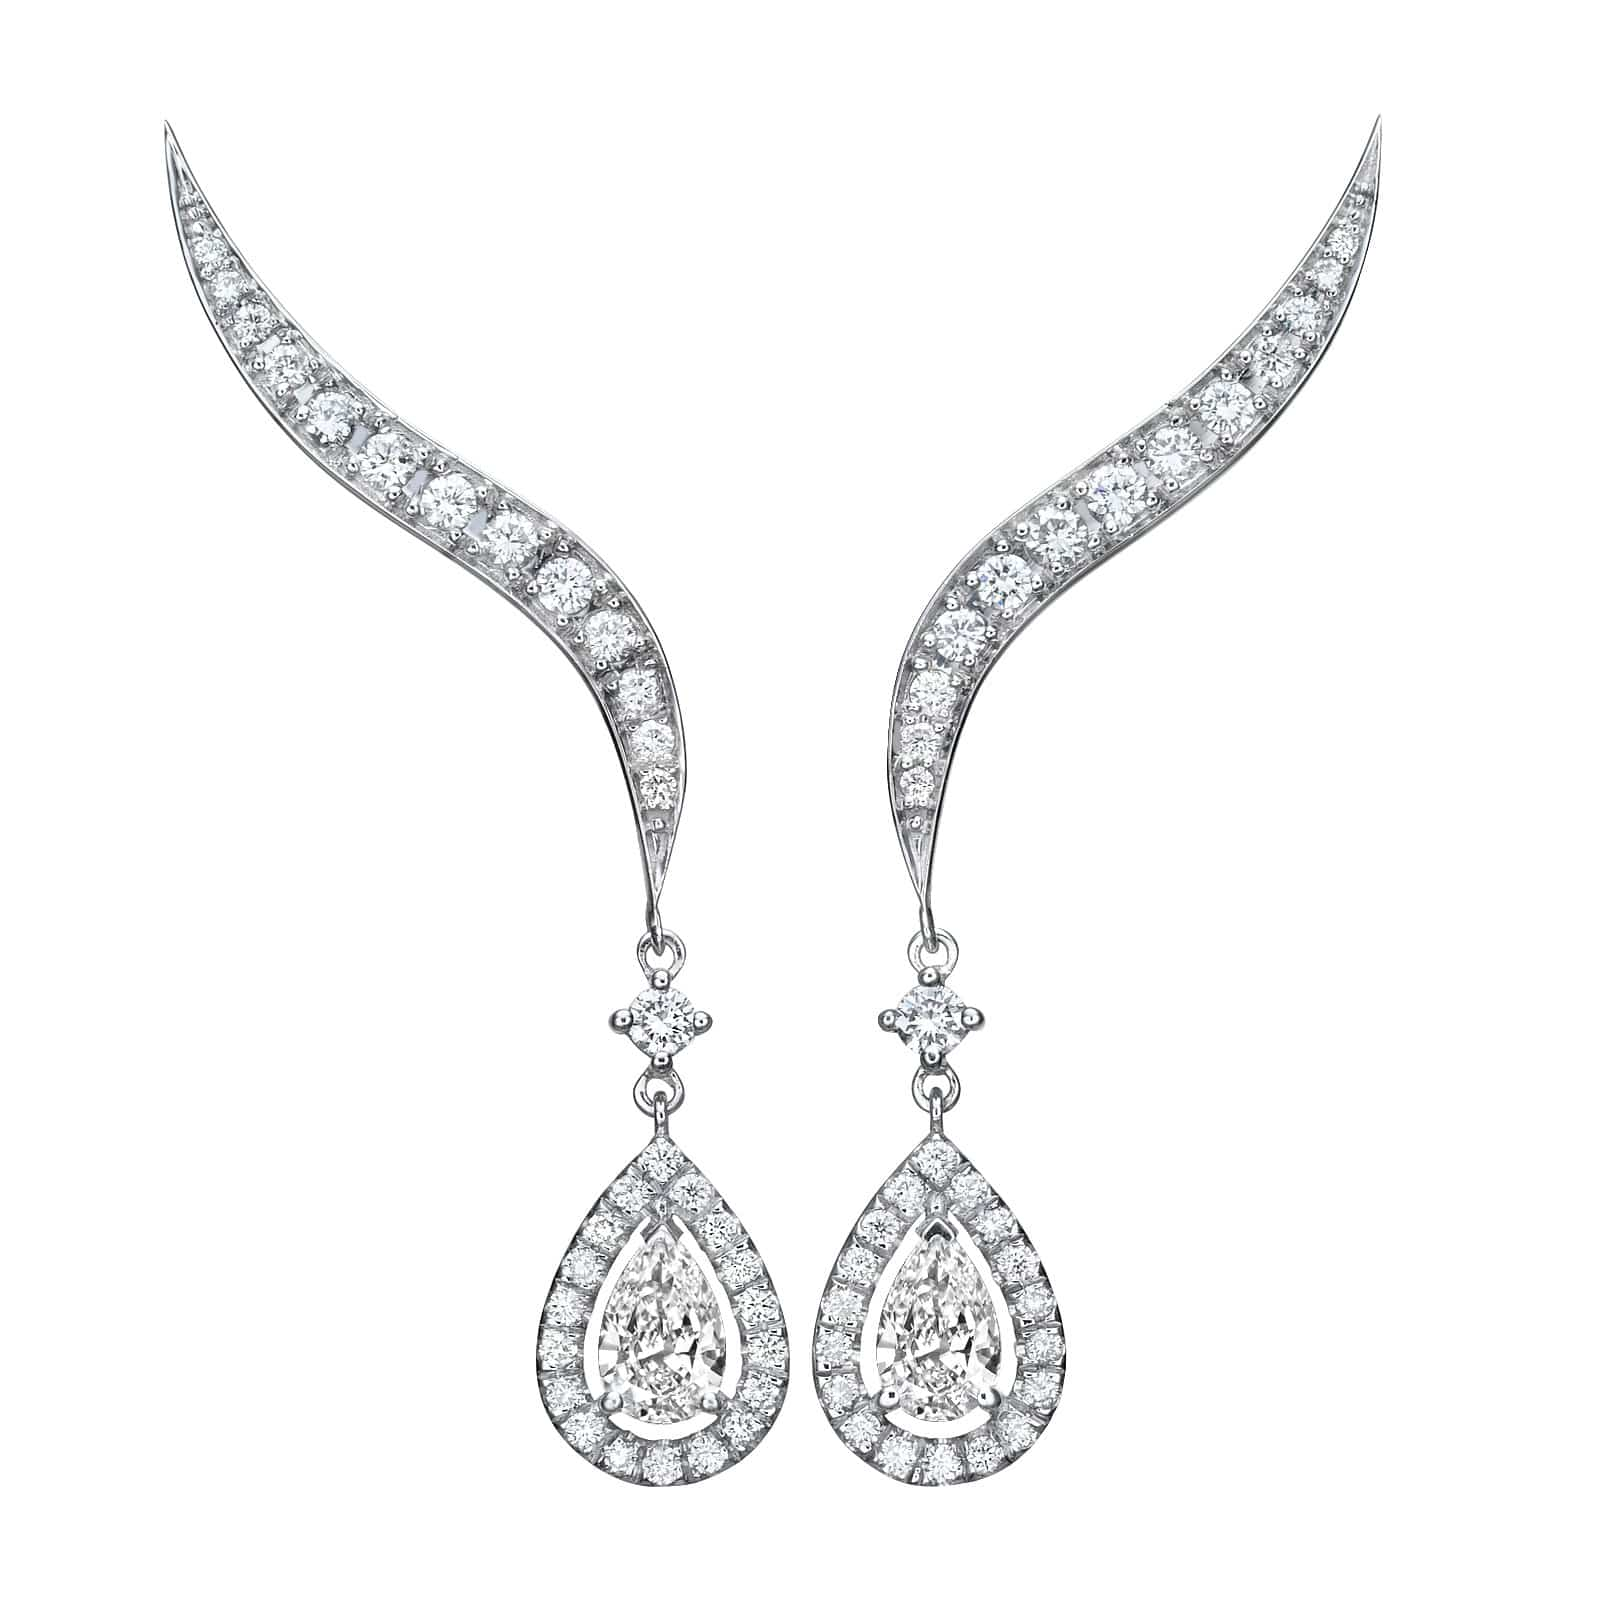 1.52 ct Climber Earrings - Pearfection Collection